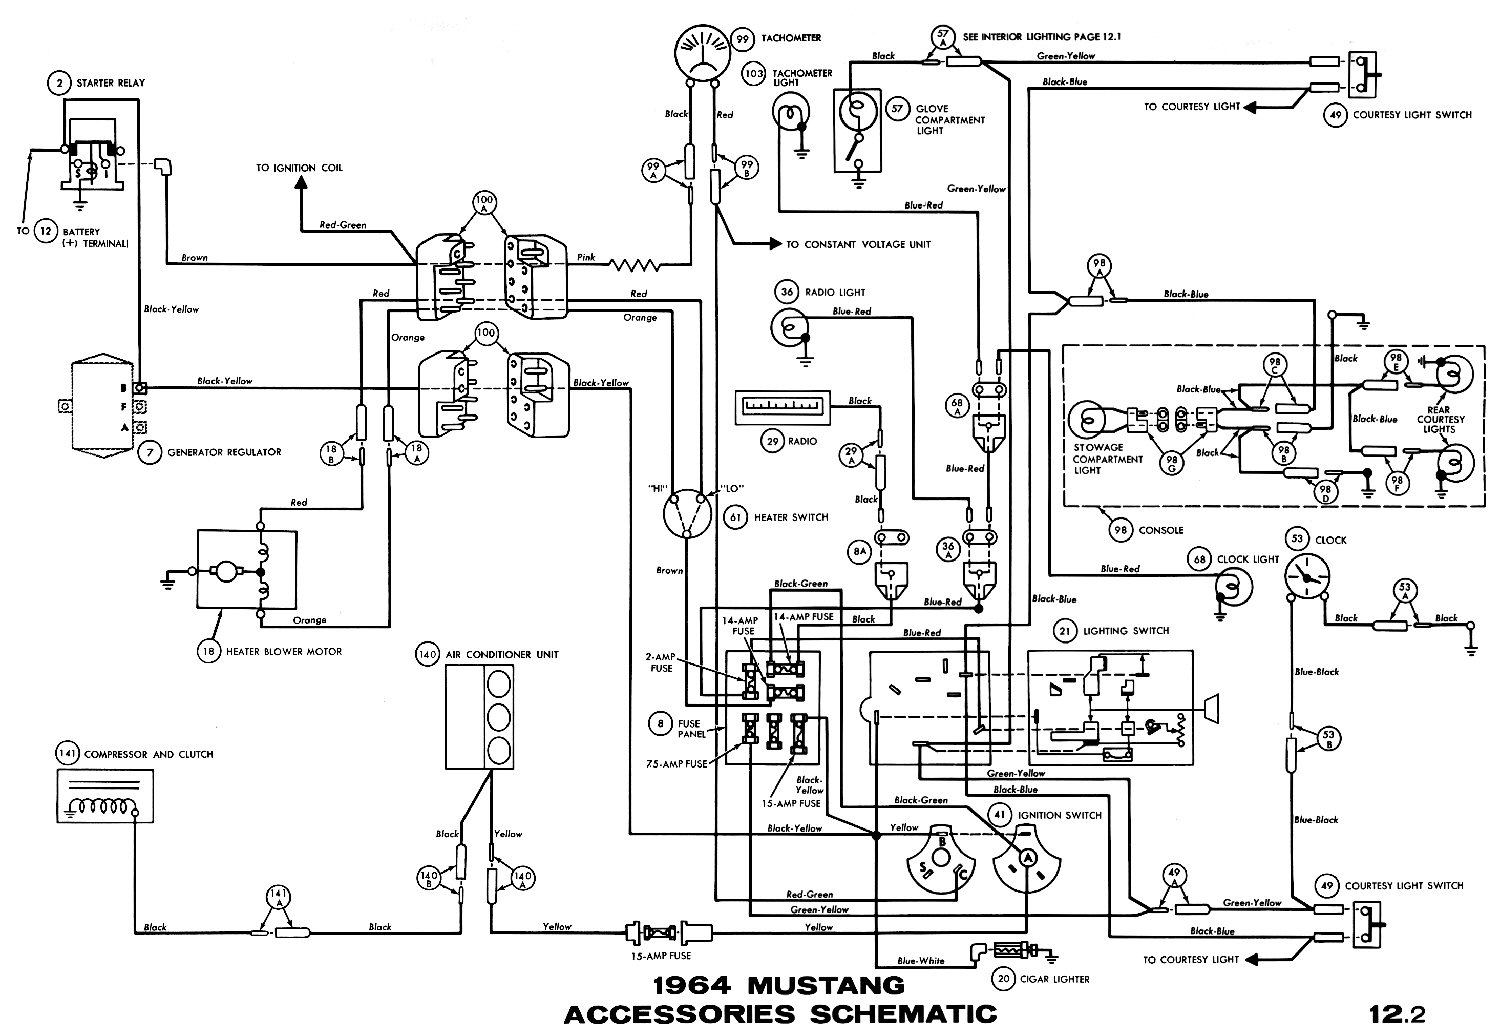 1968 Mustang Wiring Diagram Vacuum Schematics additionally 13875562834 additionally Mercuryindex together with Wiring Diagrams Of 1965 Pontiac Catalina Star Chief Bonneville And Grand Prix Part 2 besides 488815 Tach Wire. on 1965 mustang wiring diagram